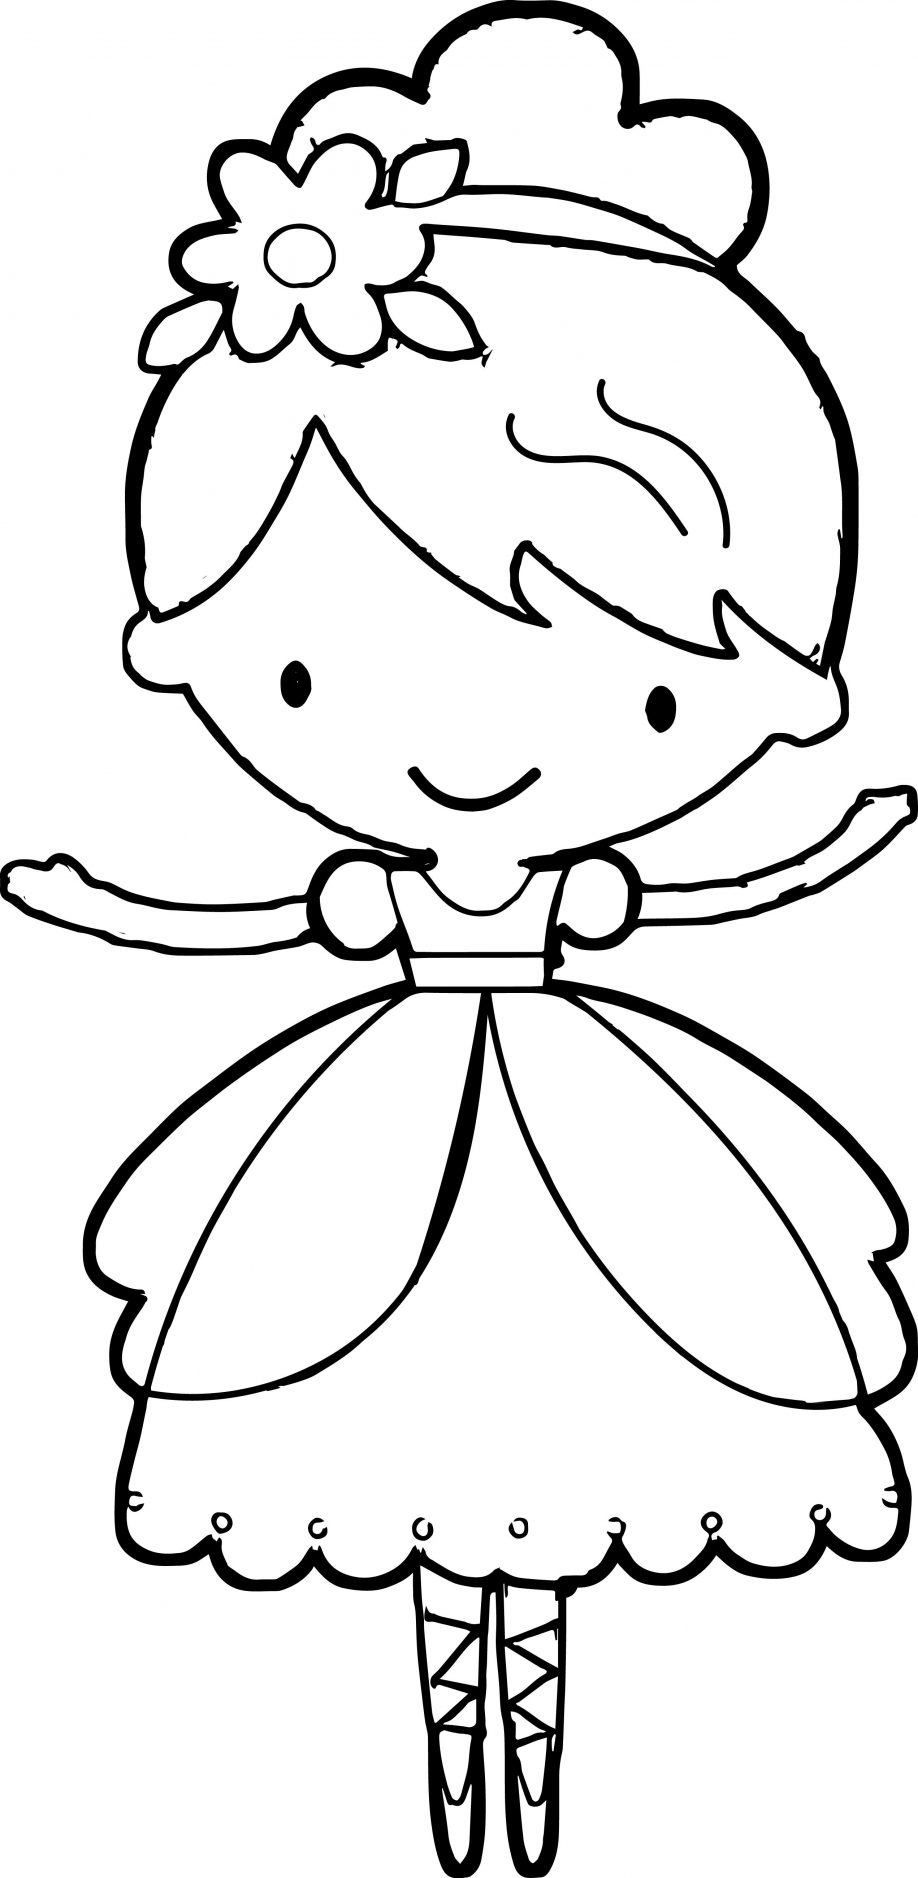 918x1878 Insider Ballerina Colouring Pictures Giselle Main Character